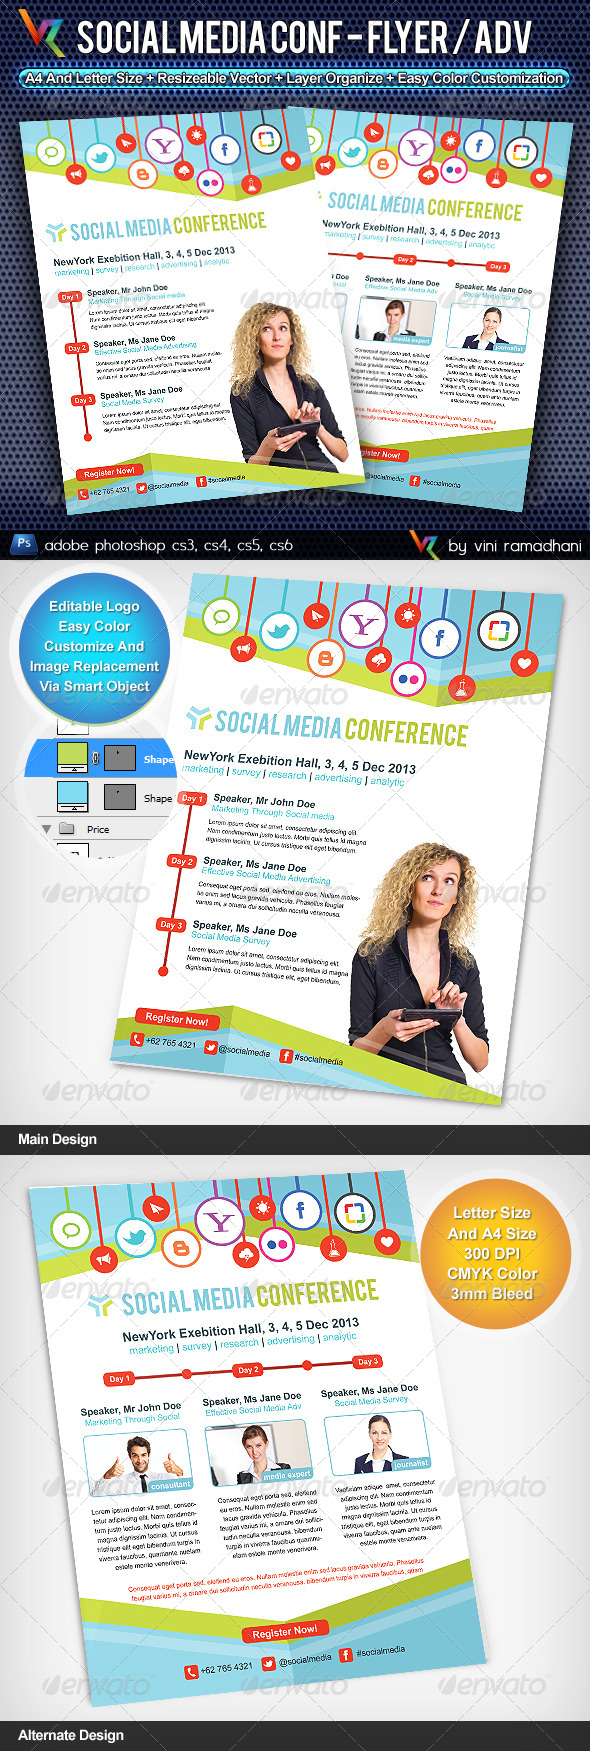 Social Media Conference Flyer Or Advertising - Corporate Flyers